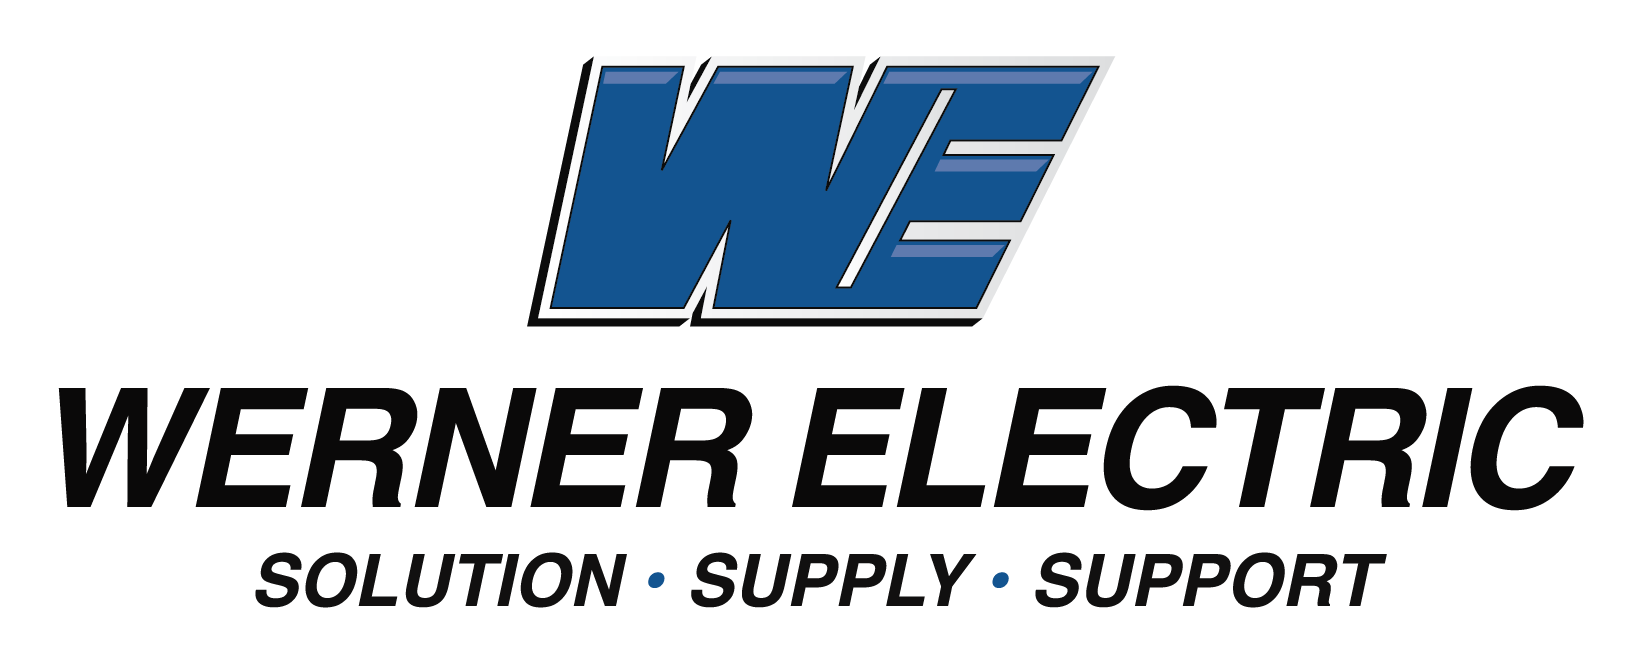 WernerElectric_Stacked_PMS288.png